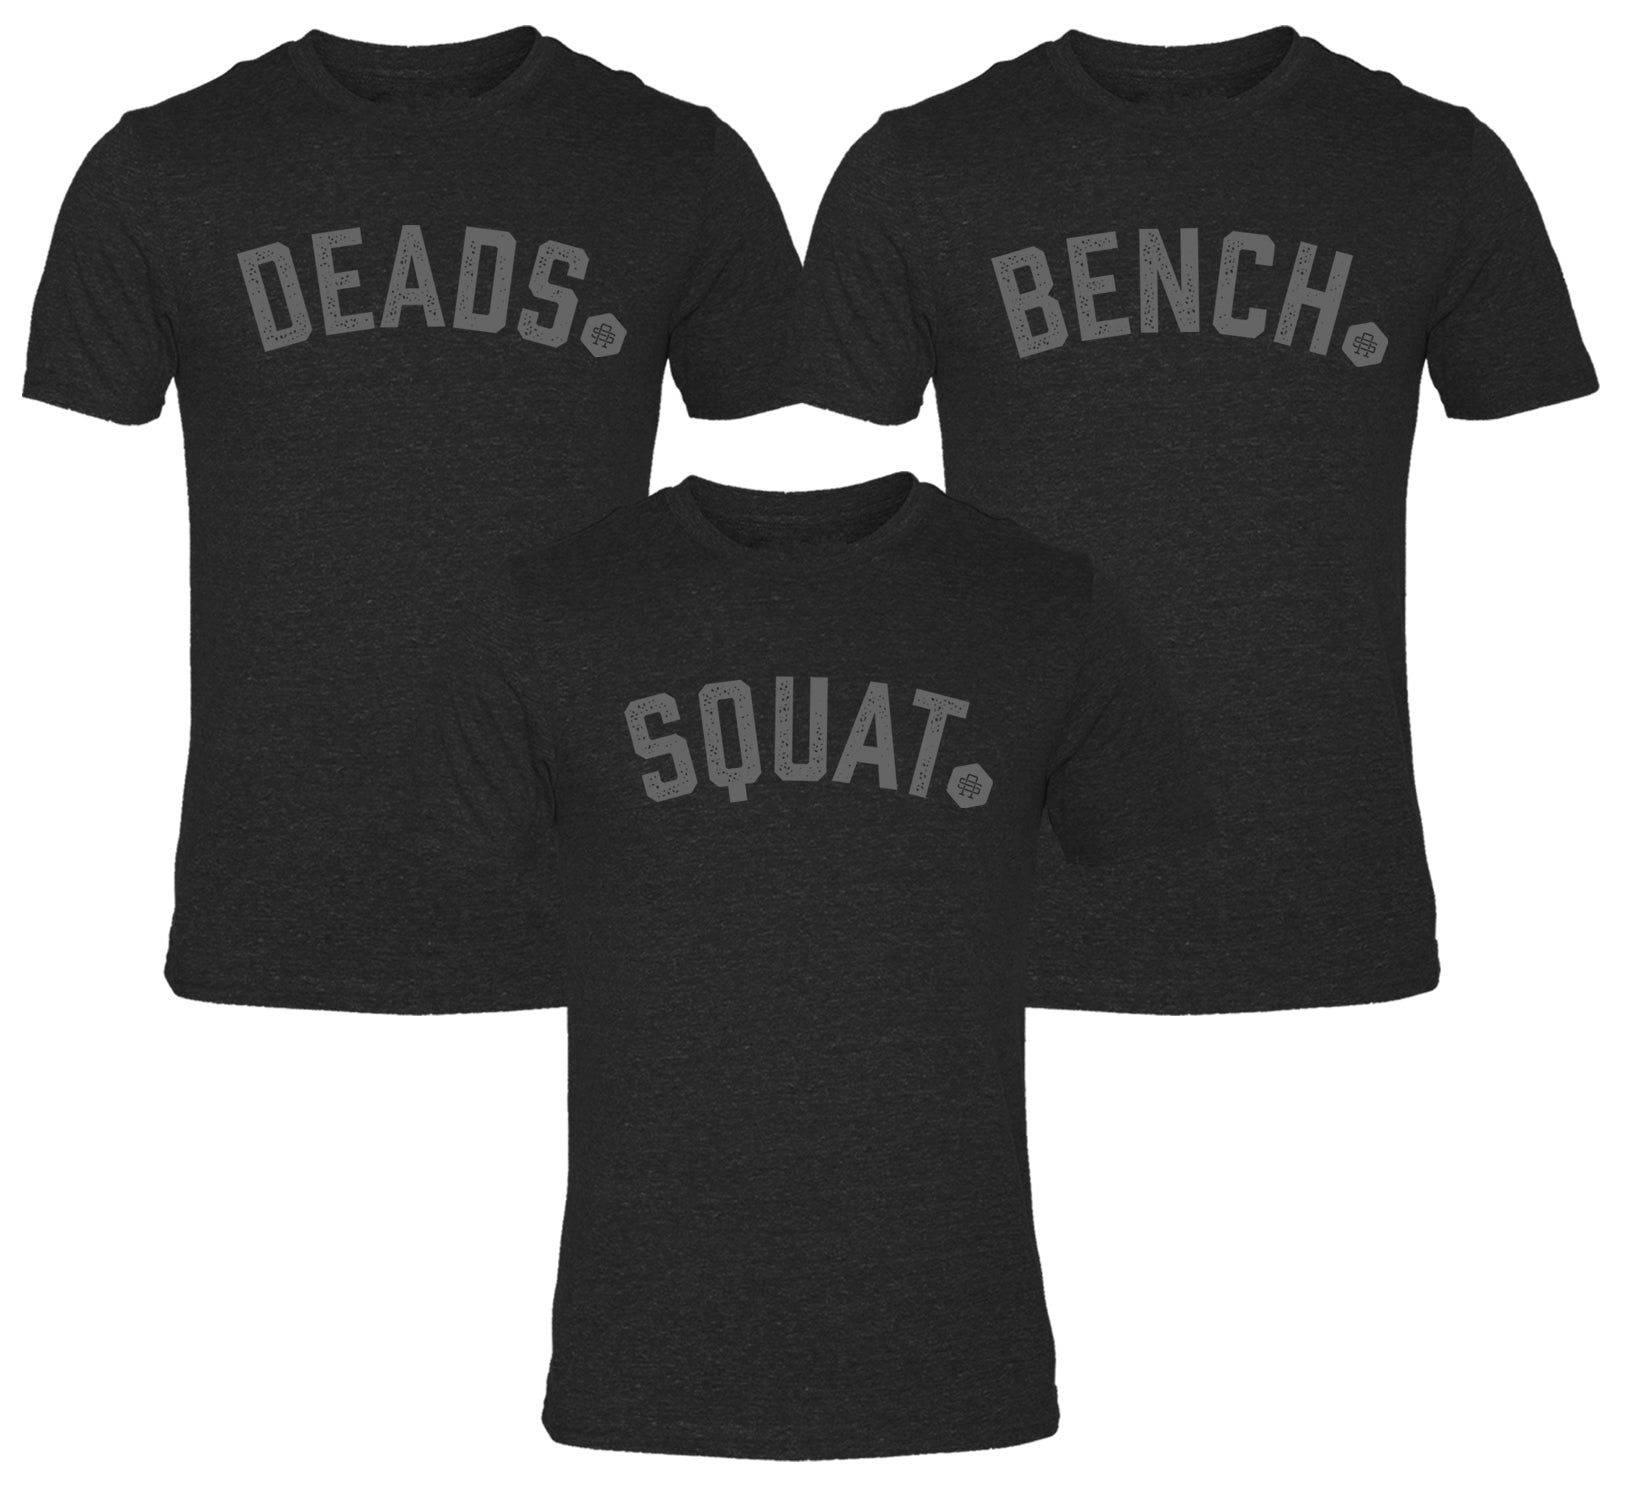 Bench Squats Deads Triblend Tee Set